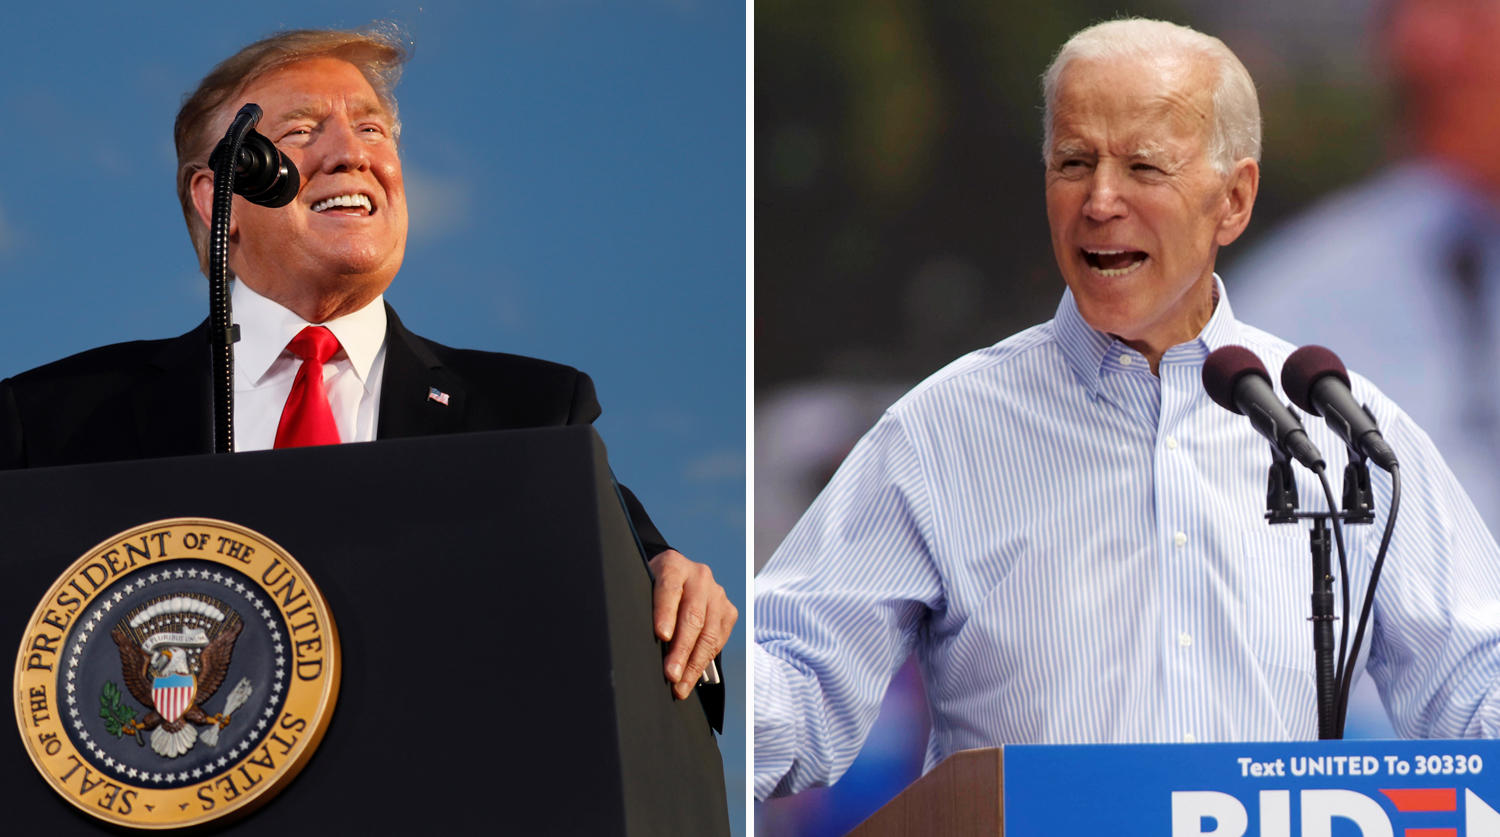 Trump supported Biden's decision